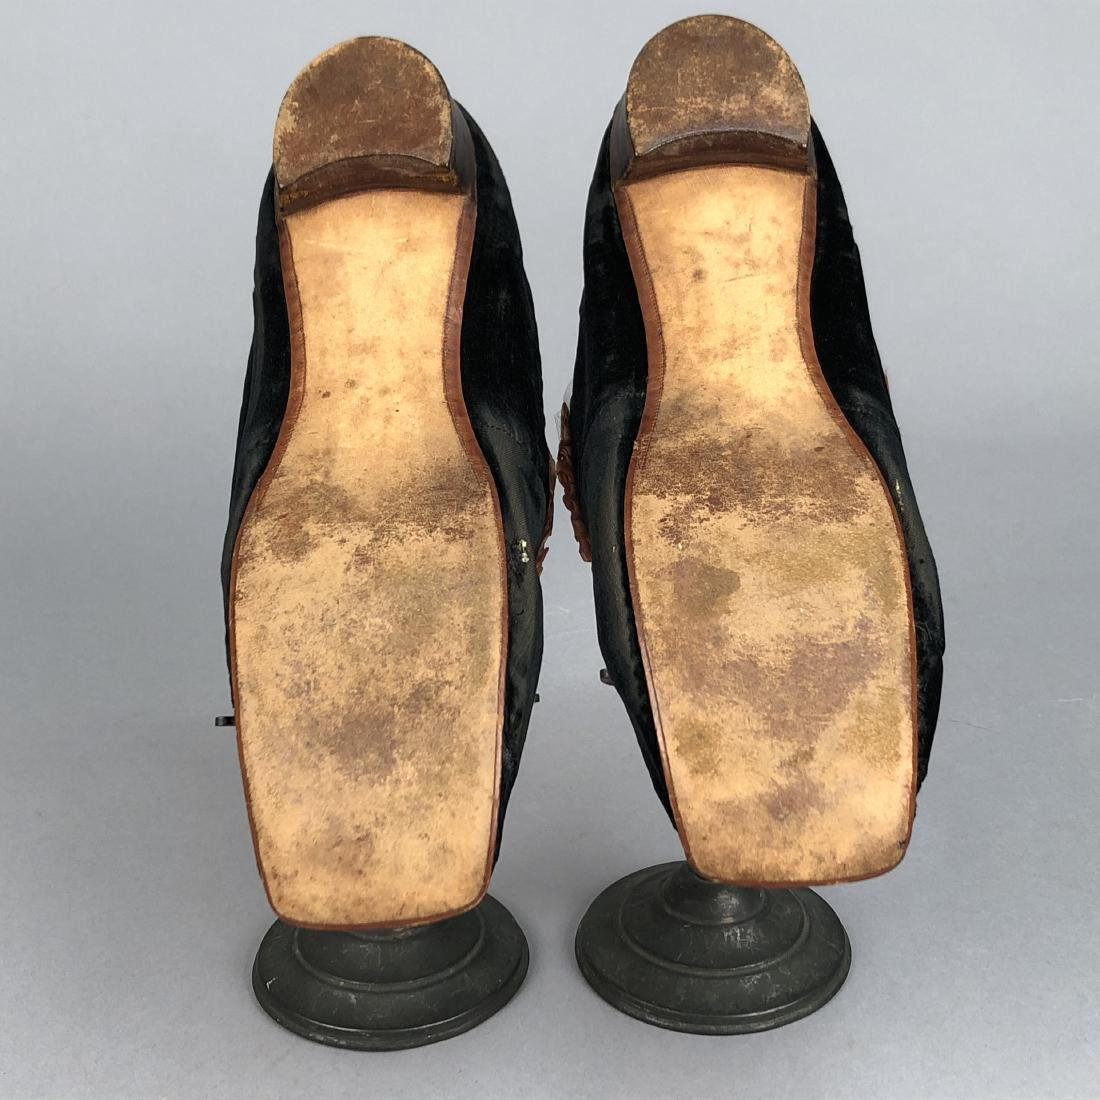 VELVET SLIPPERS with CHENILLE EMBROIDERY, c. 1860 - 5